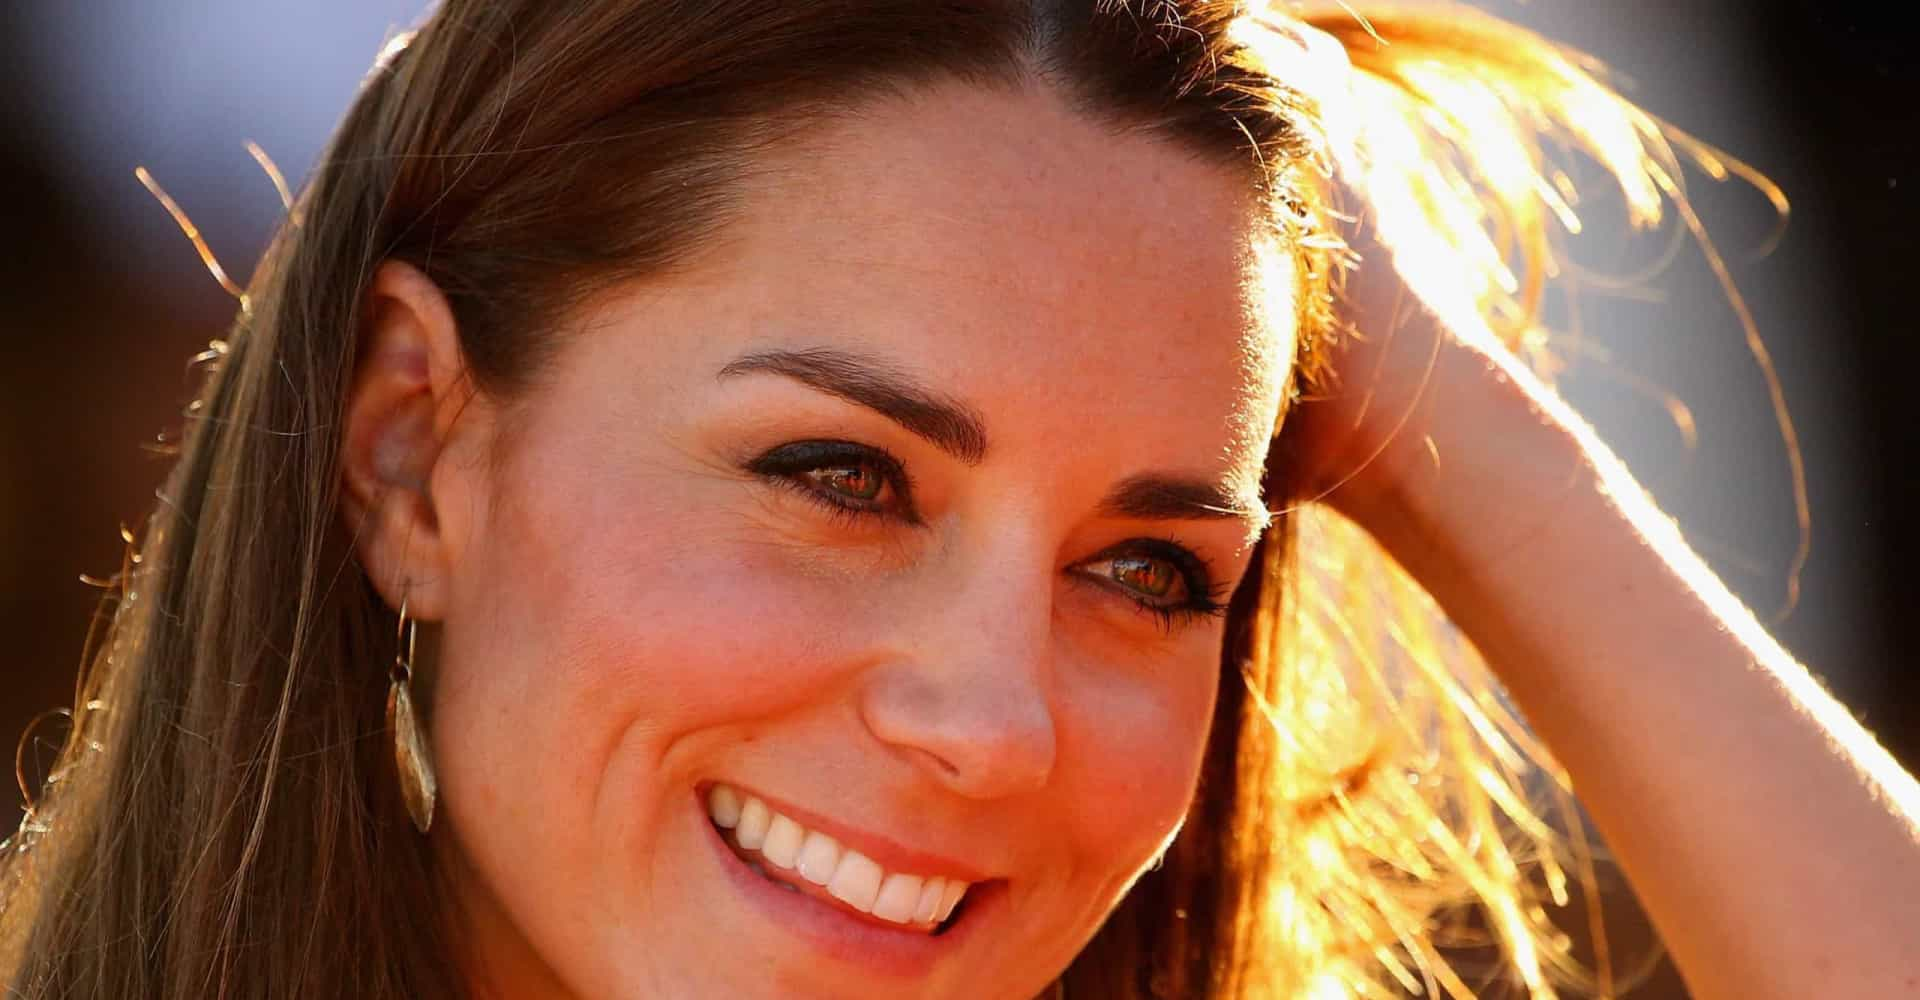 Kate Middleton's hair over the years